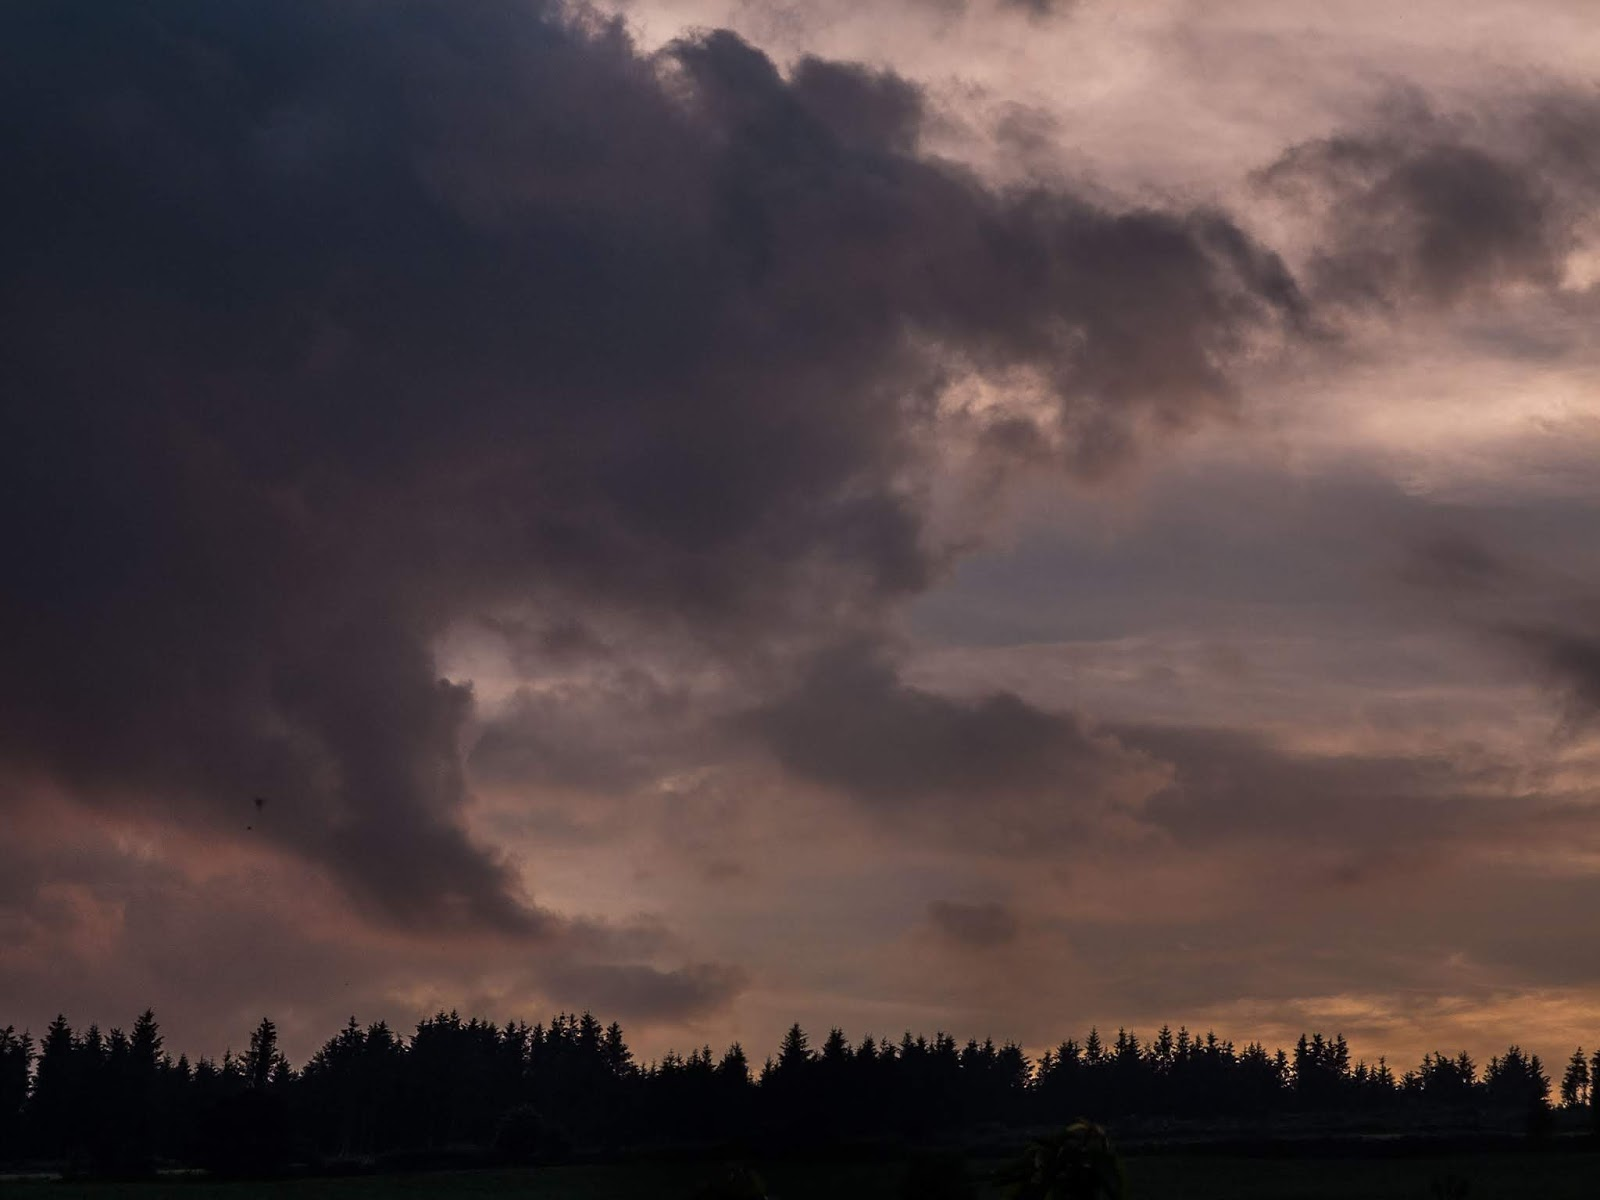 A dark cloud approaching on a sunset over a conifer forestry in the Boggeragh Mountains in North Cork.